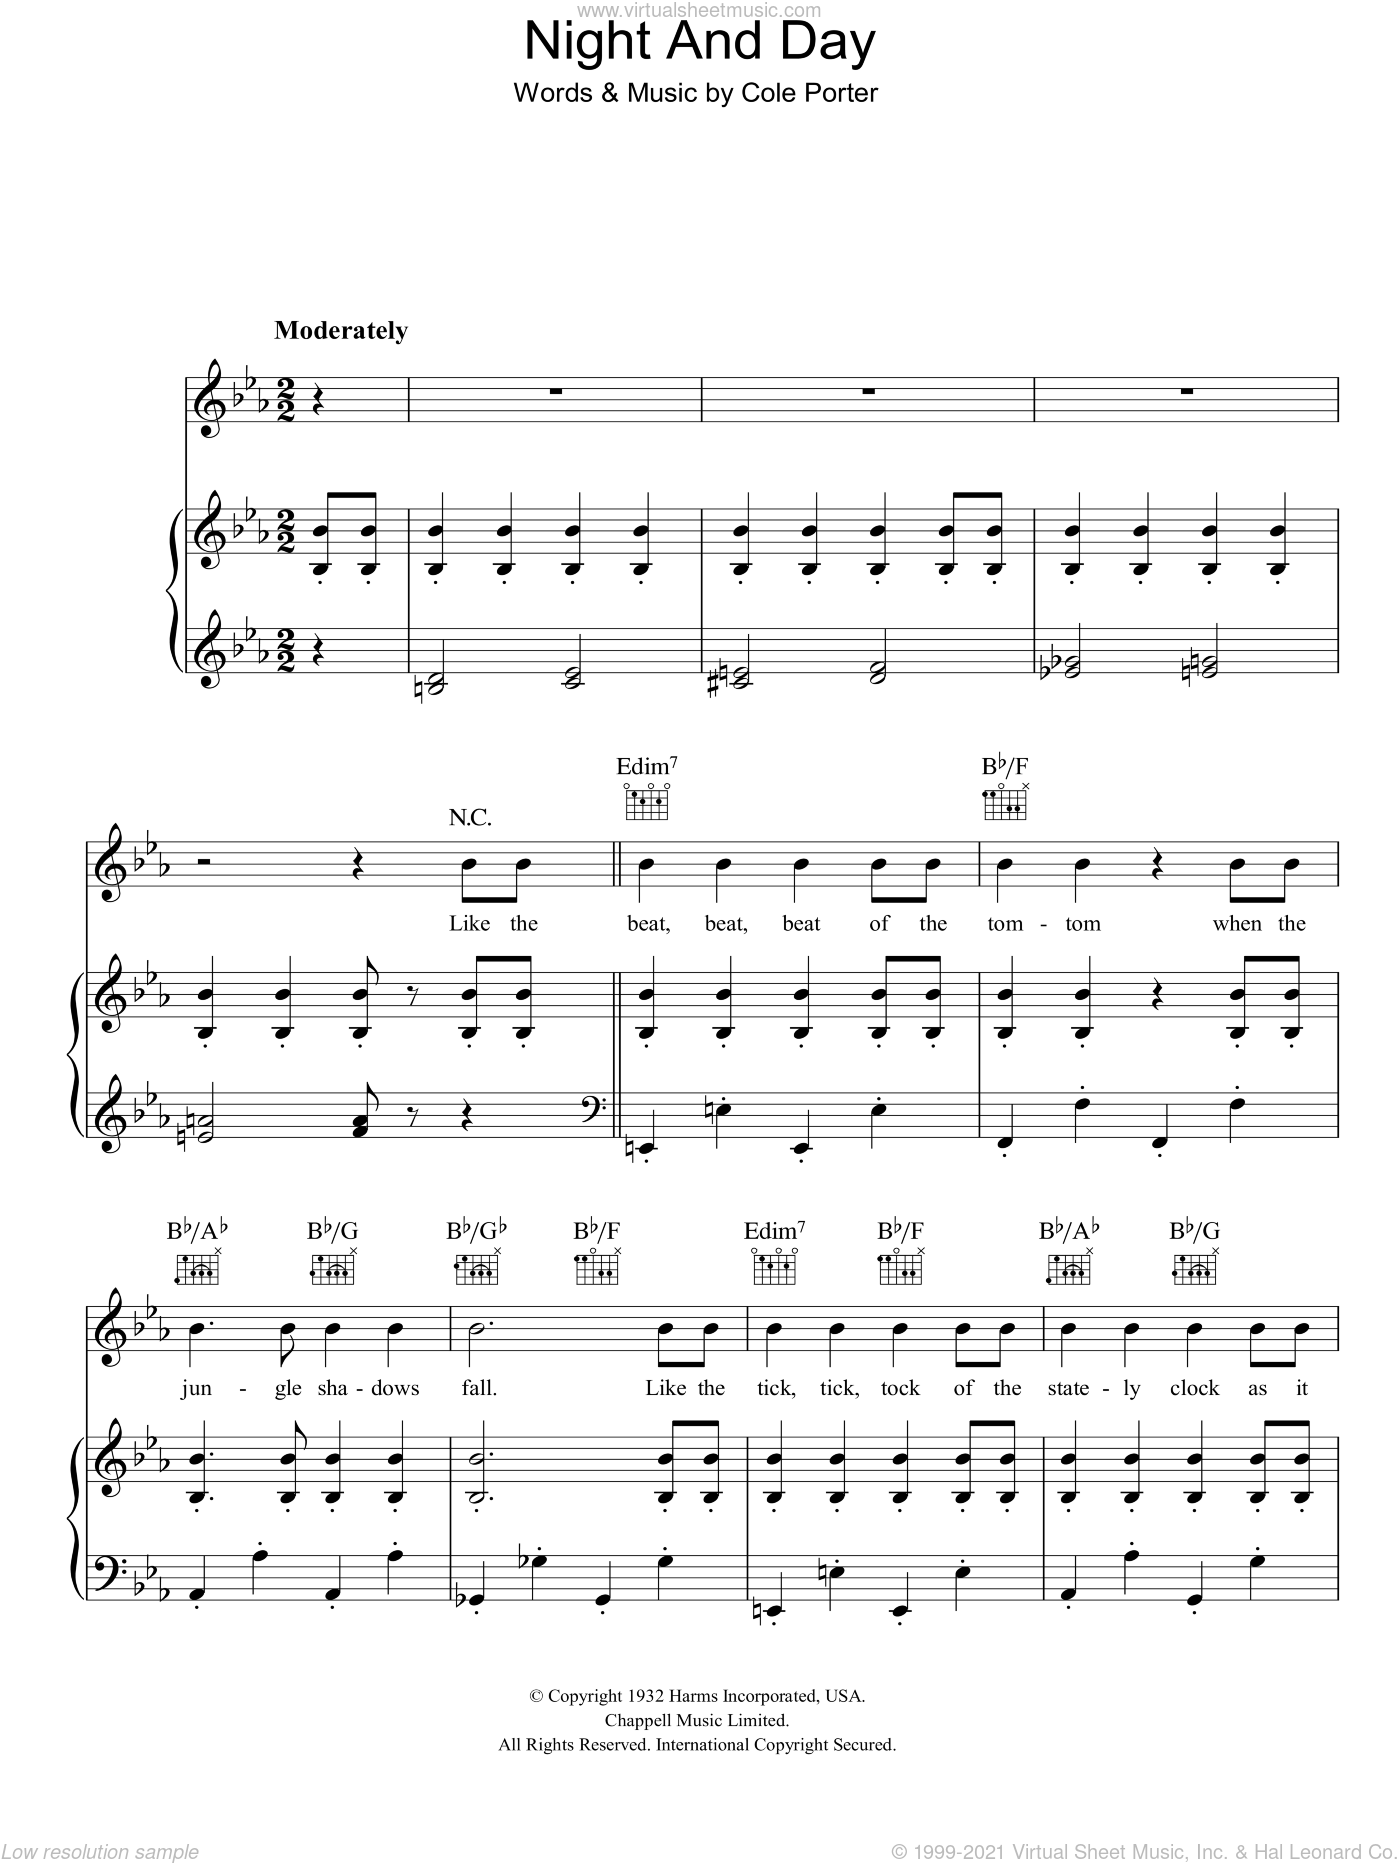 Night And Day sheet music for voice, piano or guitar by Cole Porter, intermediate skill level